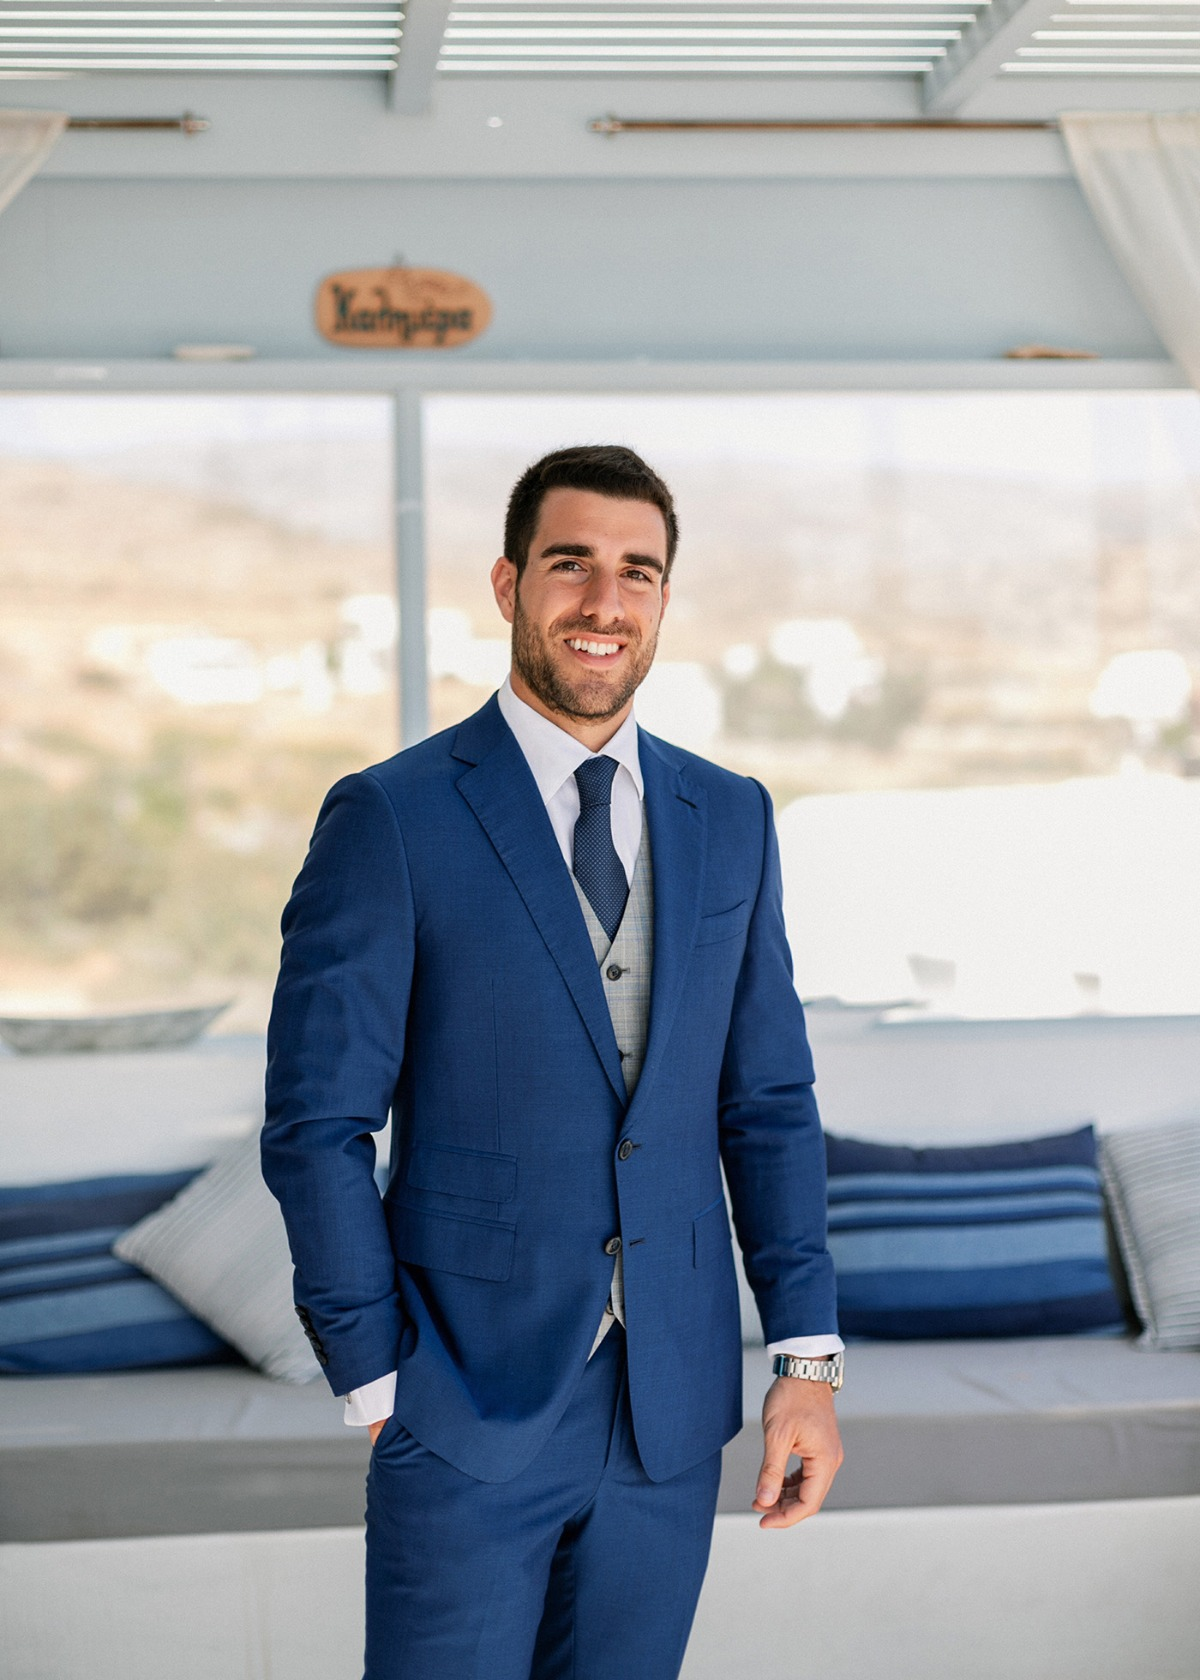 Groom in navy blue and gray suit